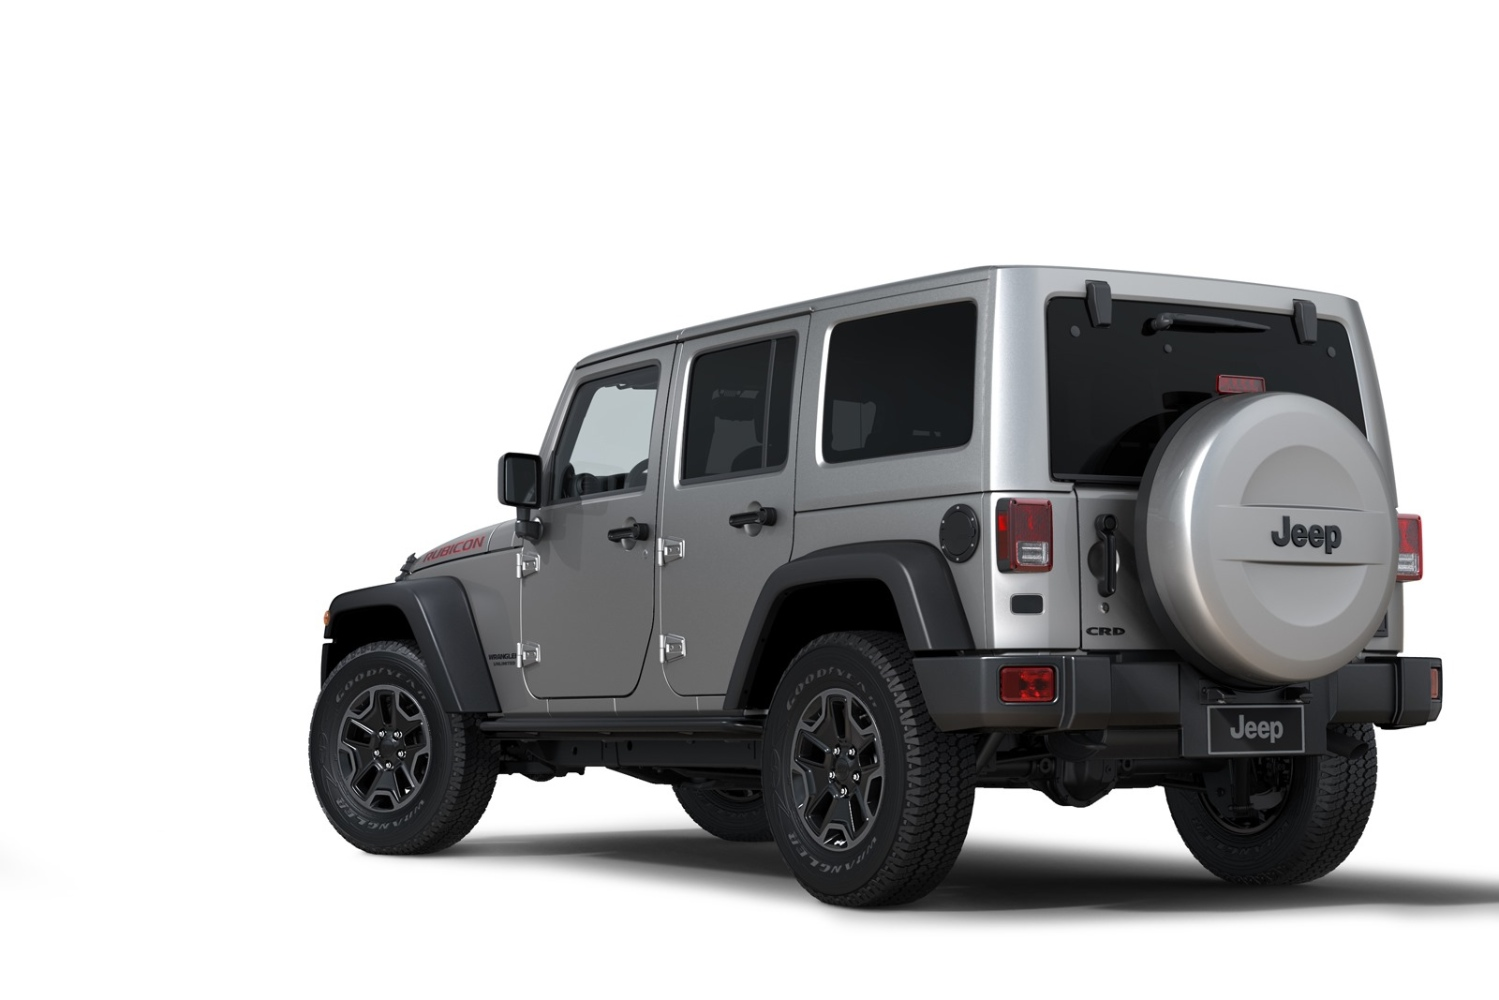 2014 jeep wrangler rubicon x special edition launched in europe autoevolution. Black Bedroom Furniture Sets. Home Design Ideas